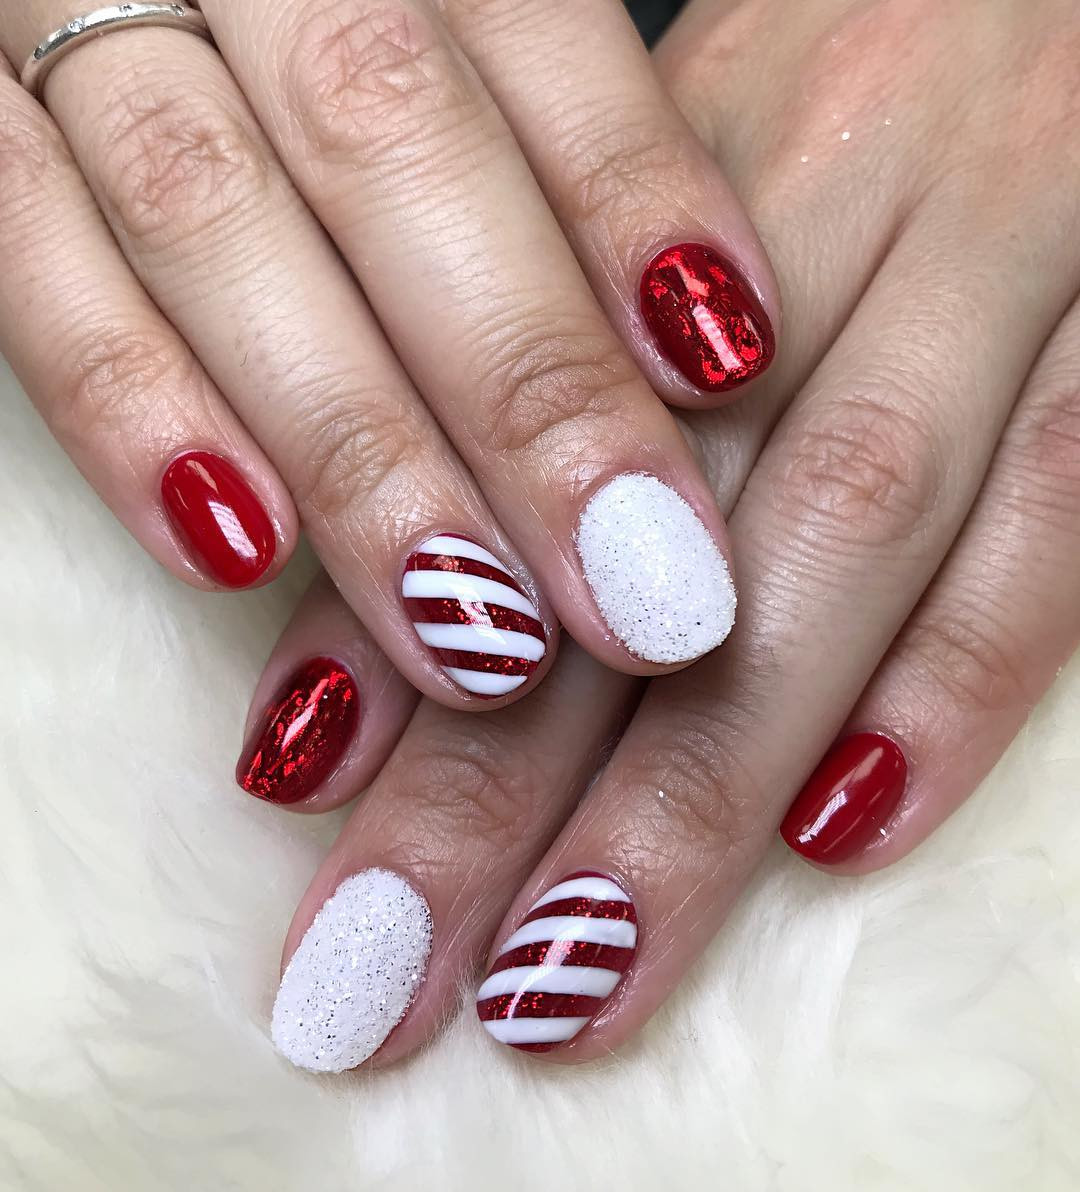 Winter Nails Designs to Spice up Your Routine,winter nails,winter nails 2019,winter nails colors,winter nails coffin,#winternails